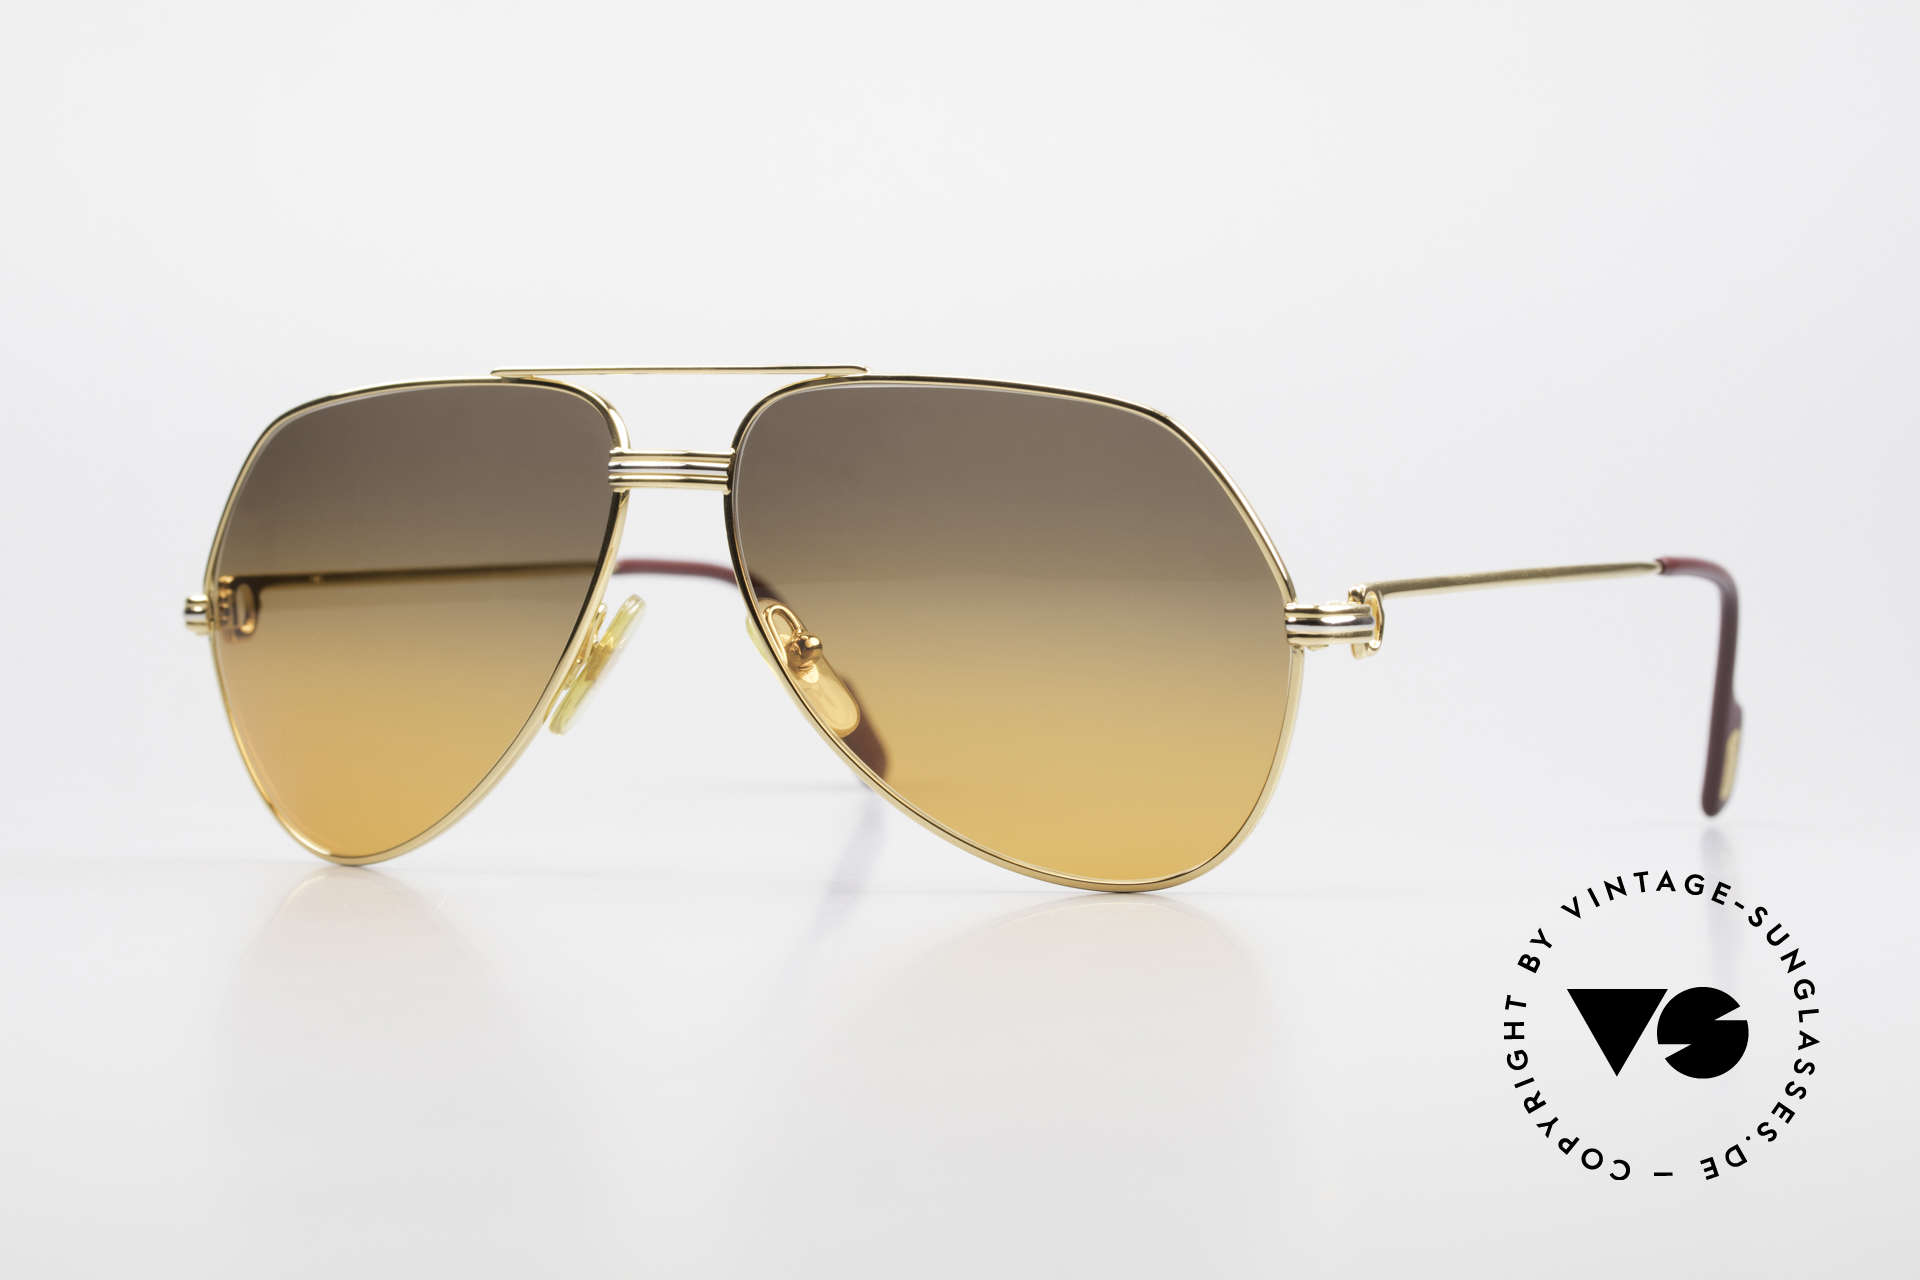 Cartier Vendome LC - M Movie Sunglasses Wall Street, Vendome = the most famous eyewear design by CARTIER, Made for Men and Women